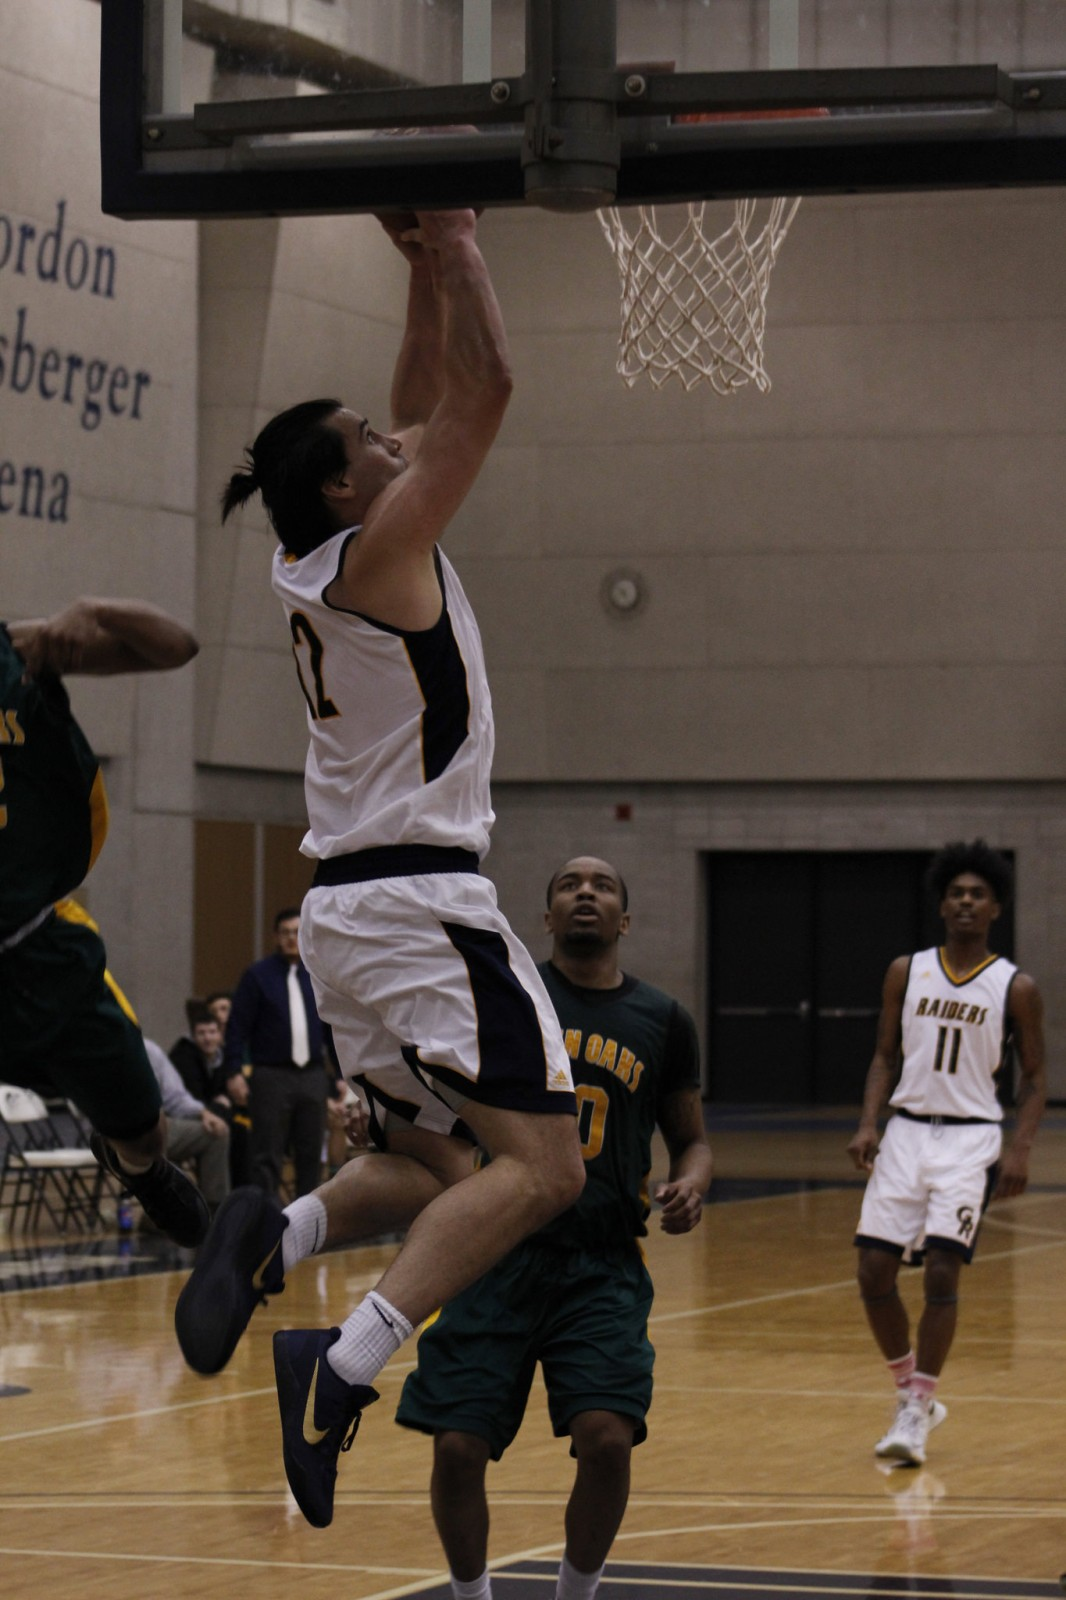 Sophomore Center, #42, Max Prendergast goes up for layup against Glen Oaks CC.